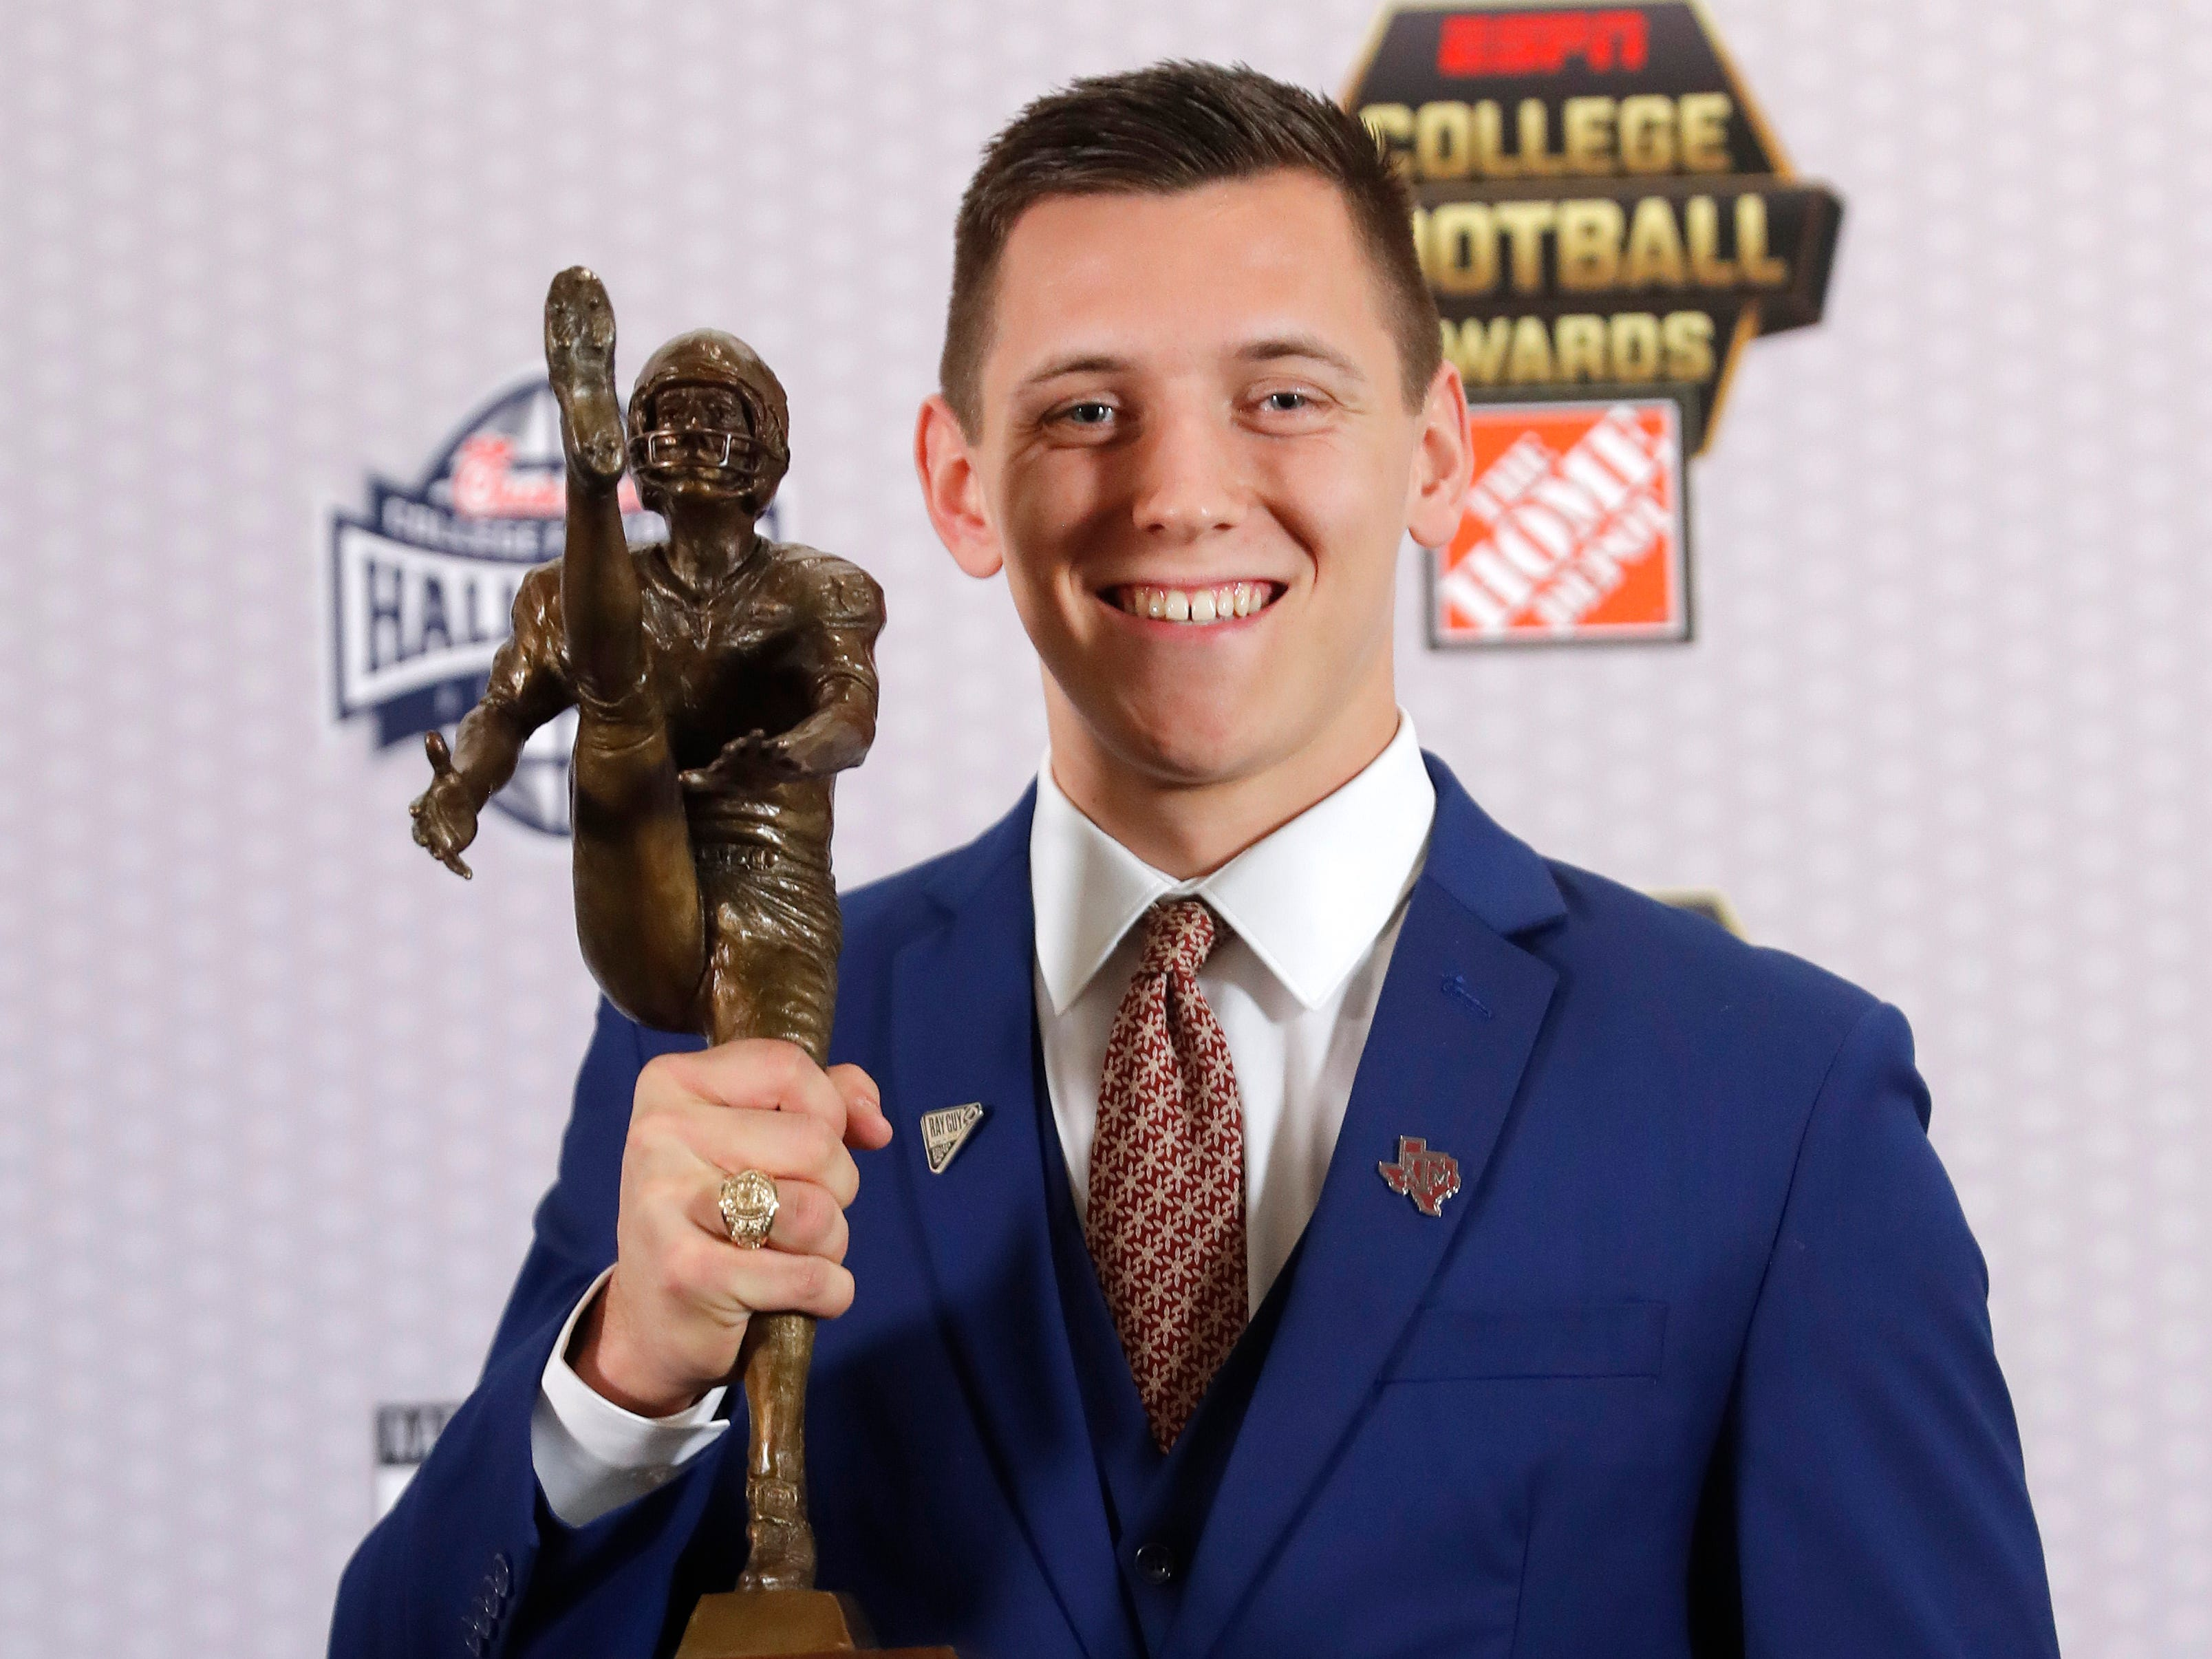 Texas A&M's Braden Mann poses with the trophy after winning The Ray Guy Award for being the top punter in college football.